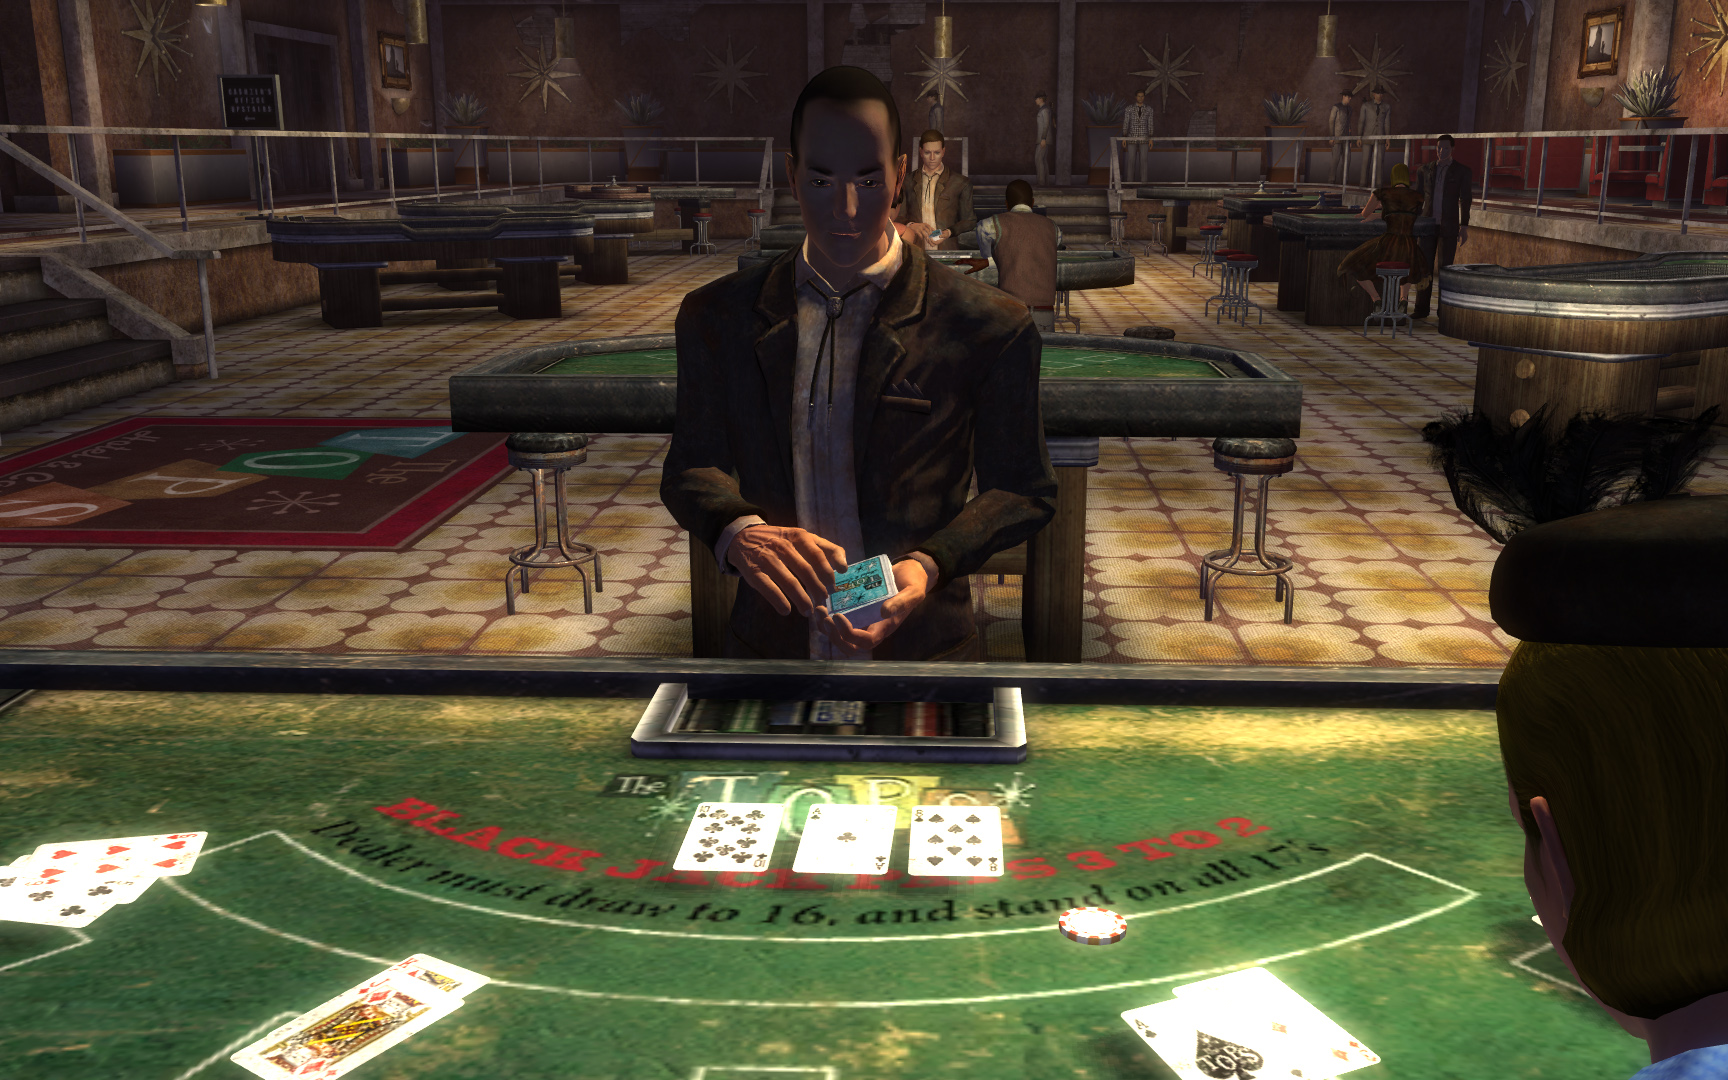 number of poker hands possible